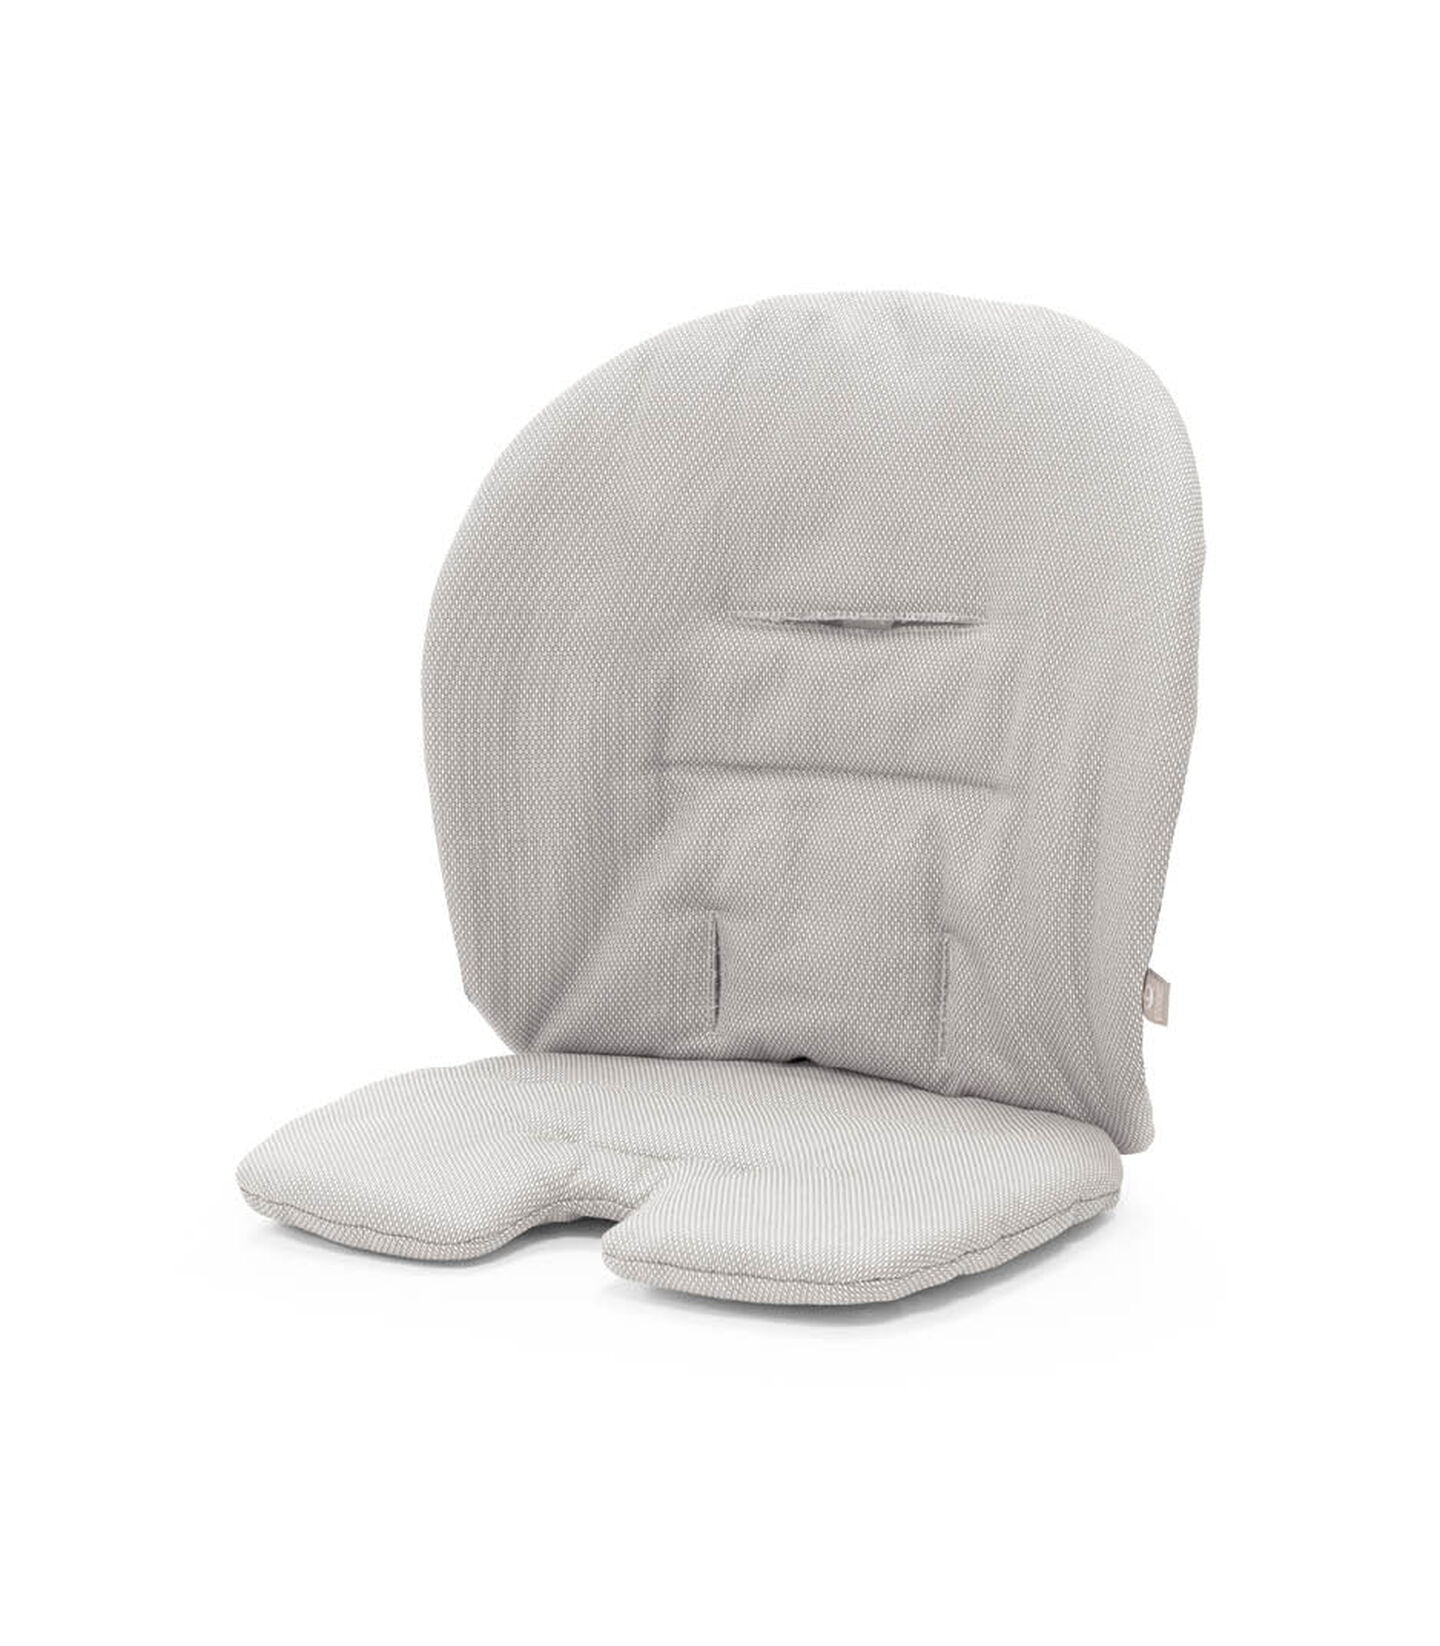 Stokke® Steps™ Baby Set Cushion Timeless Grey, Timeless Grey, mainview view 2